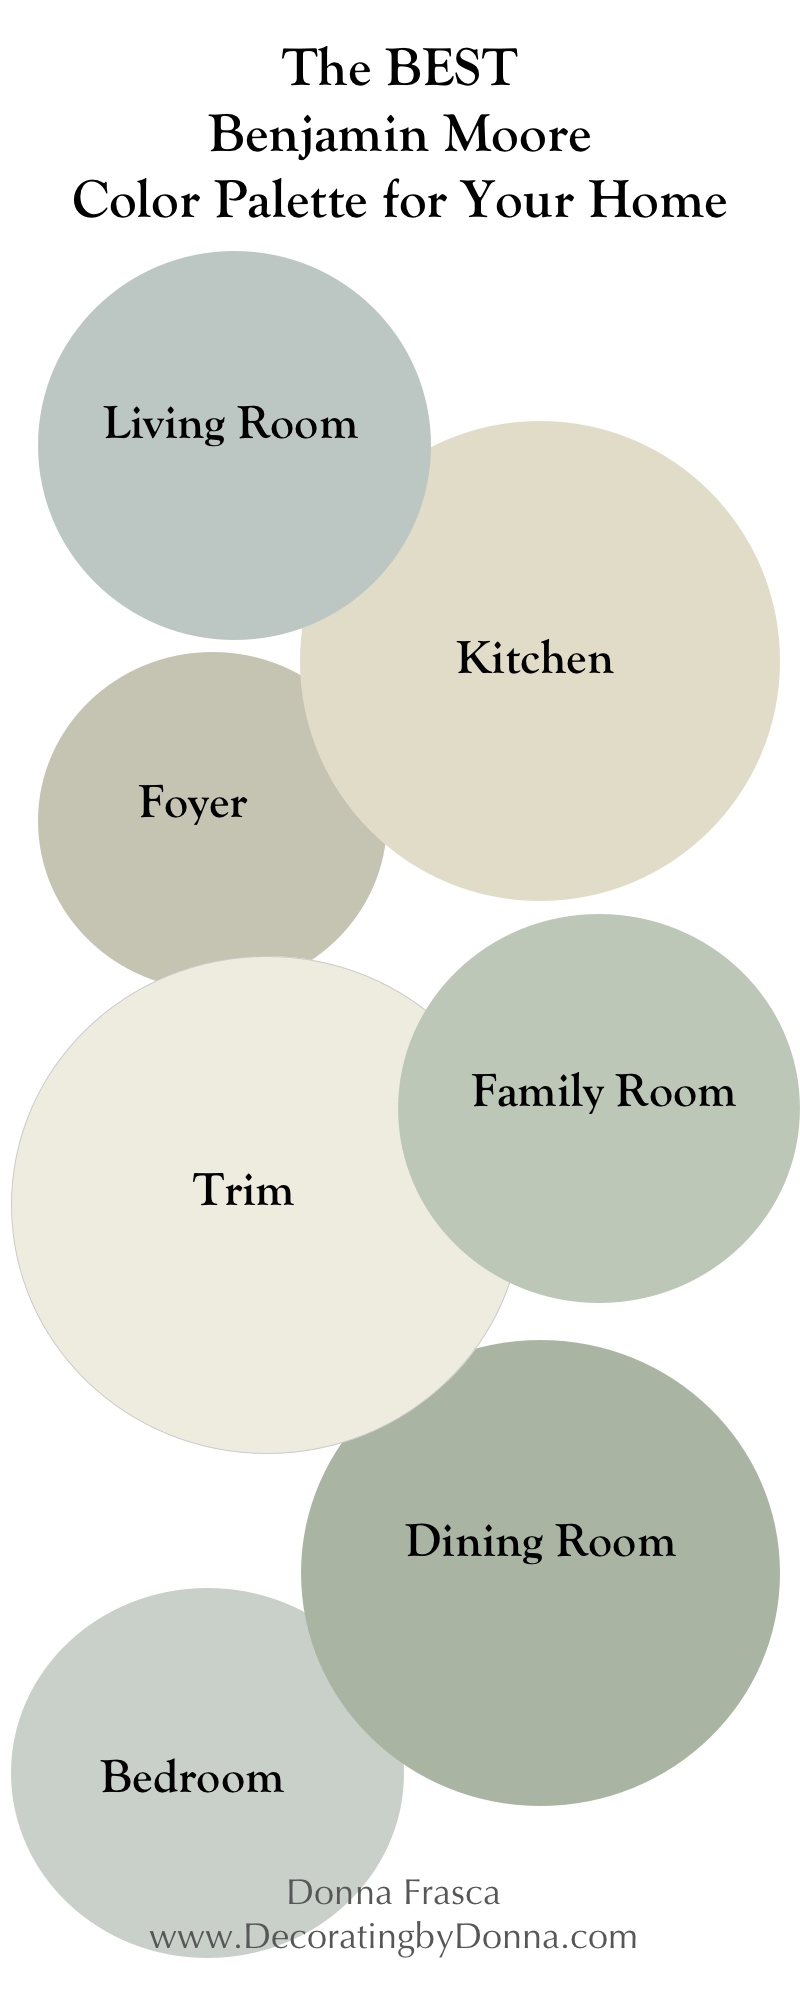 the best benjamin moore coastal color palette for your home updated decorating by donna